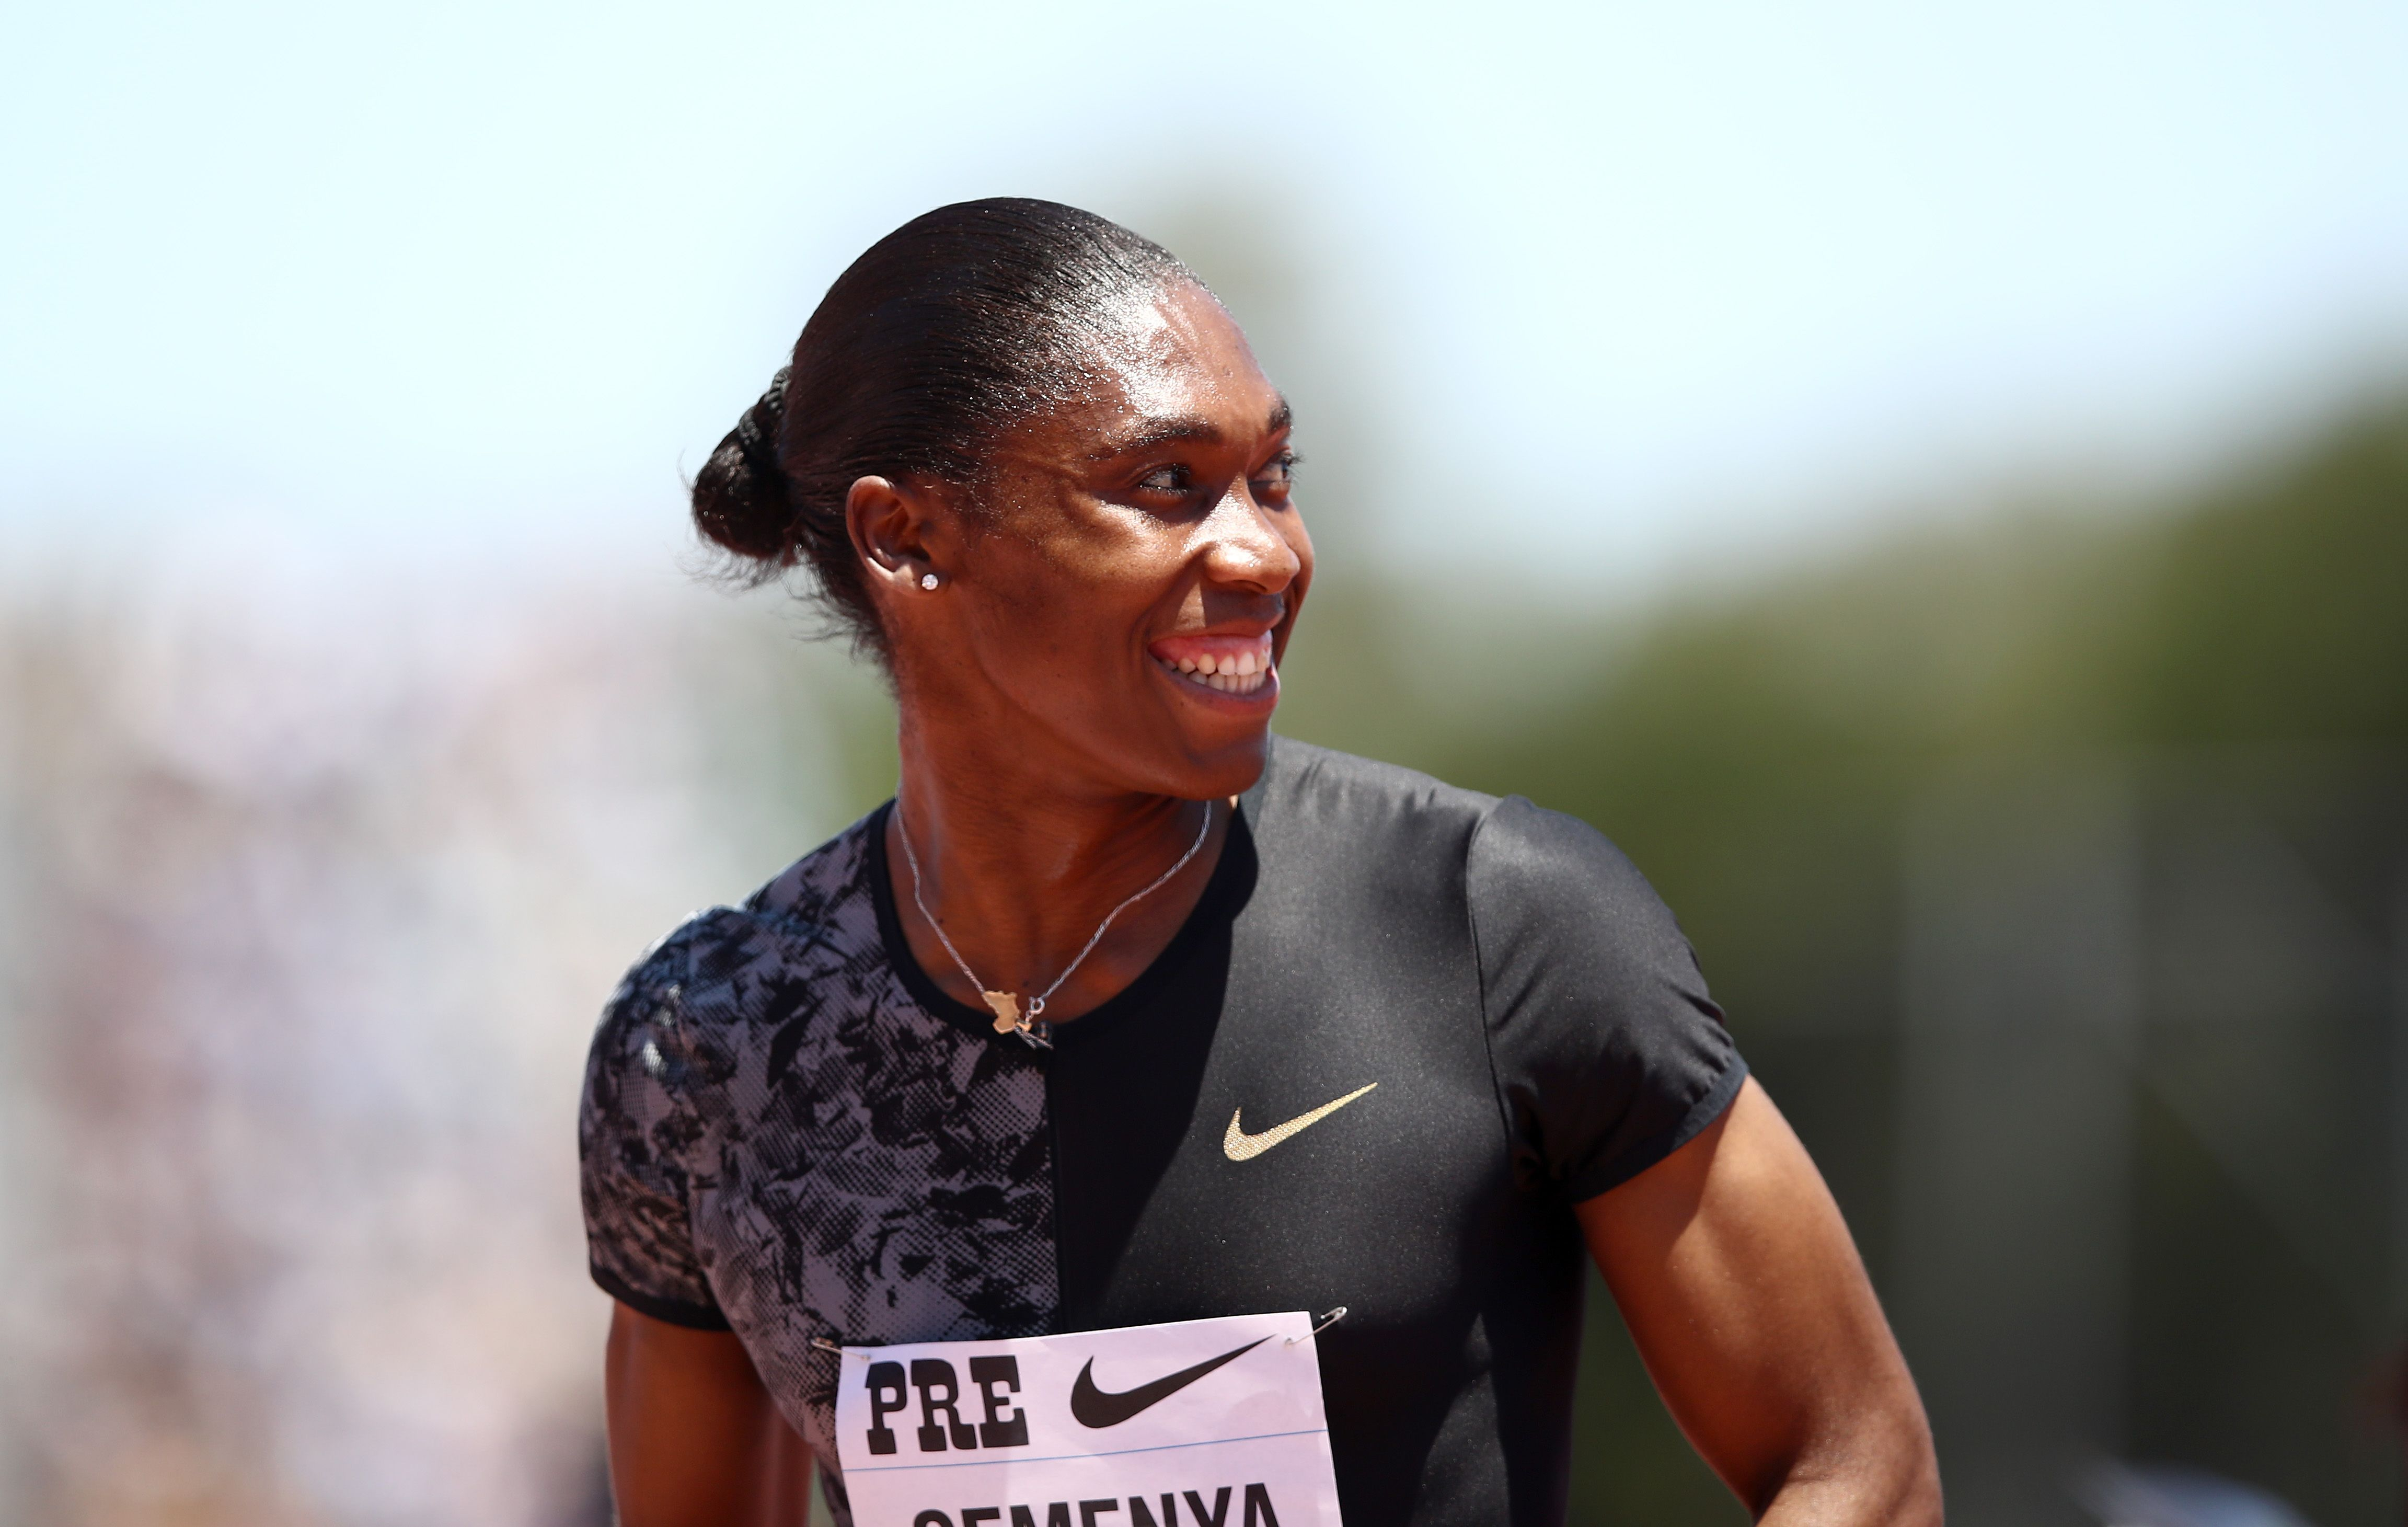 800-Meter Champion Caster Semenya Joins Soccer Club in South Africa